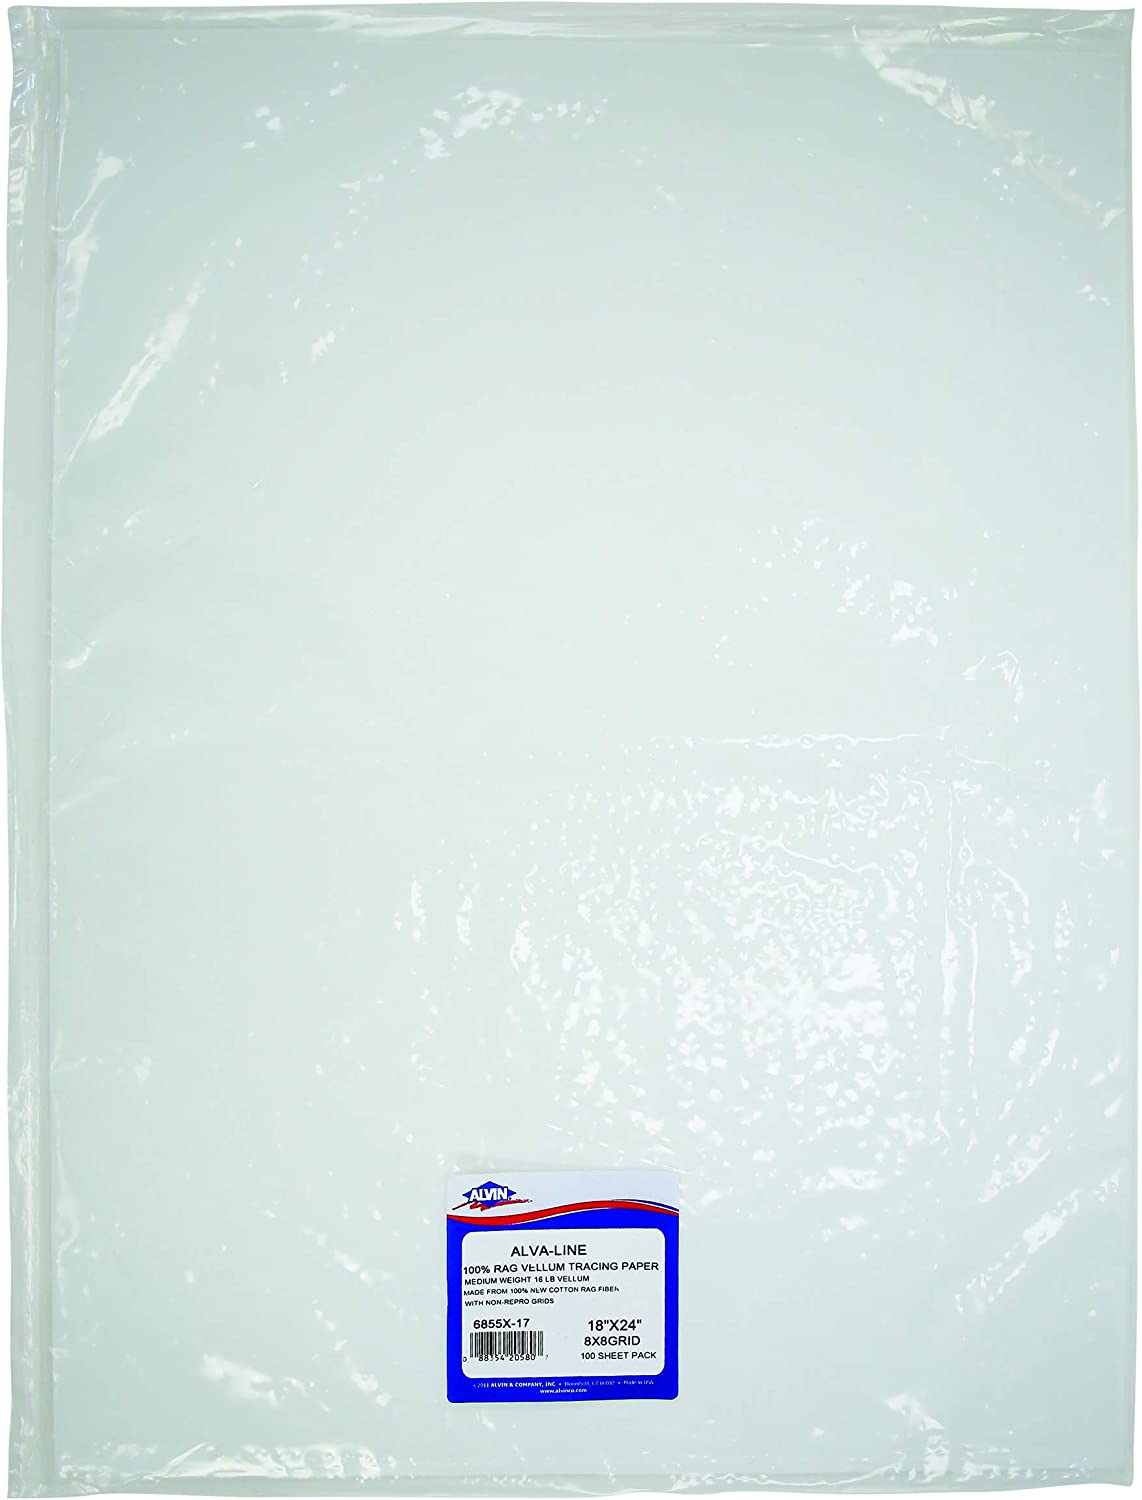 """Alvin, 6855X-17, 100% Rag Vellum Tracing Paper 8x8 Grid, For Drawing Use - 18"""" x 24"""", Pack of 100 Sheets"""